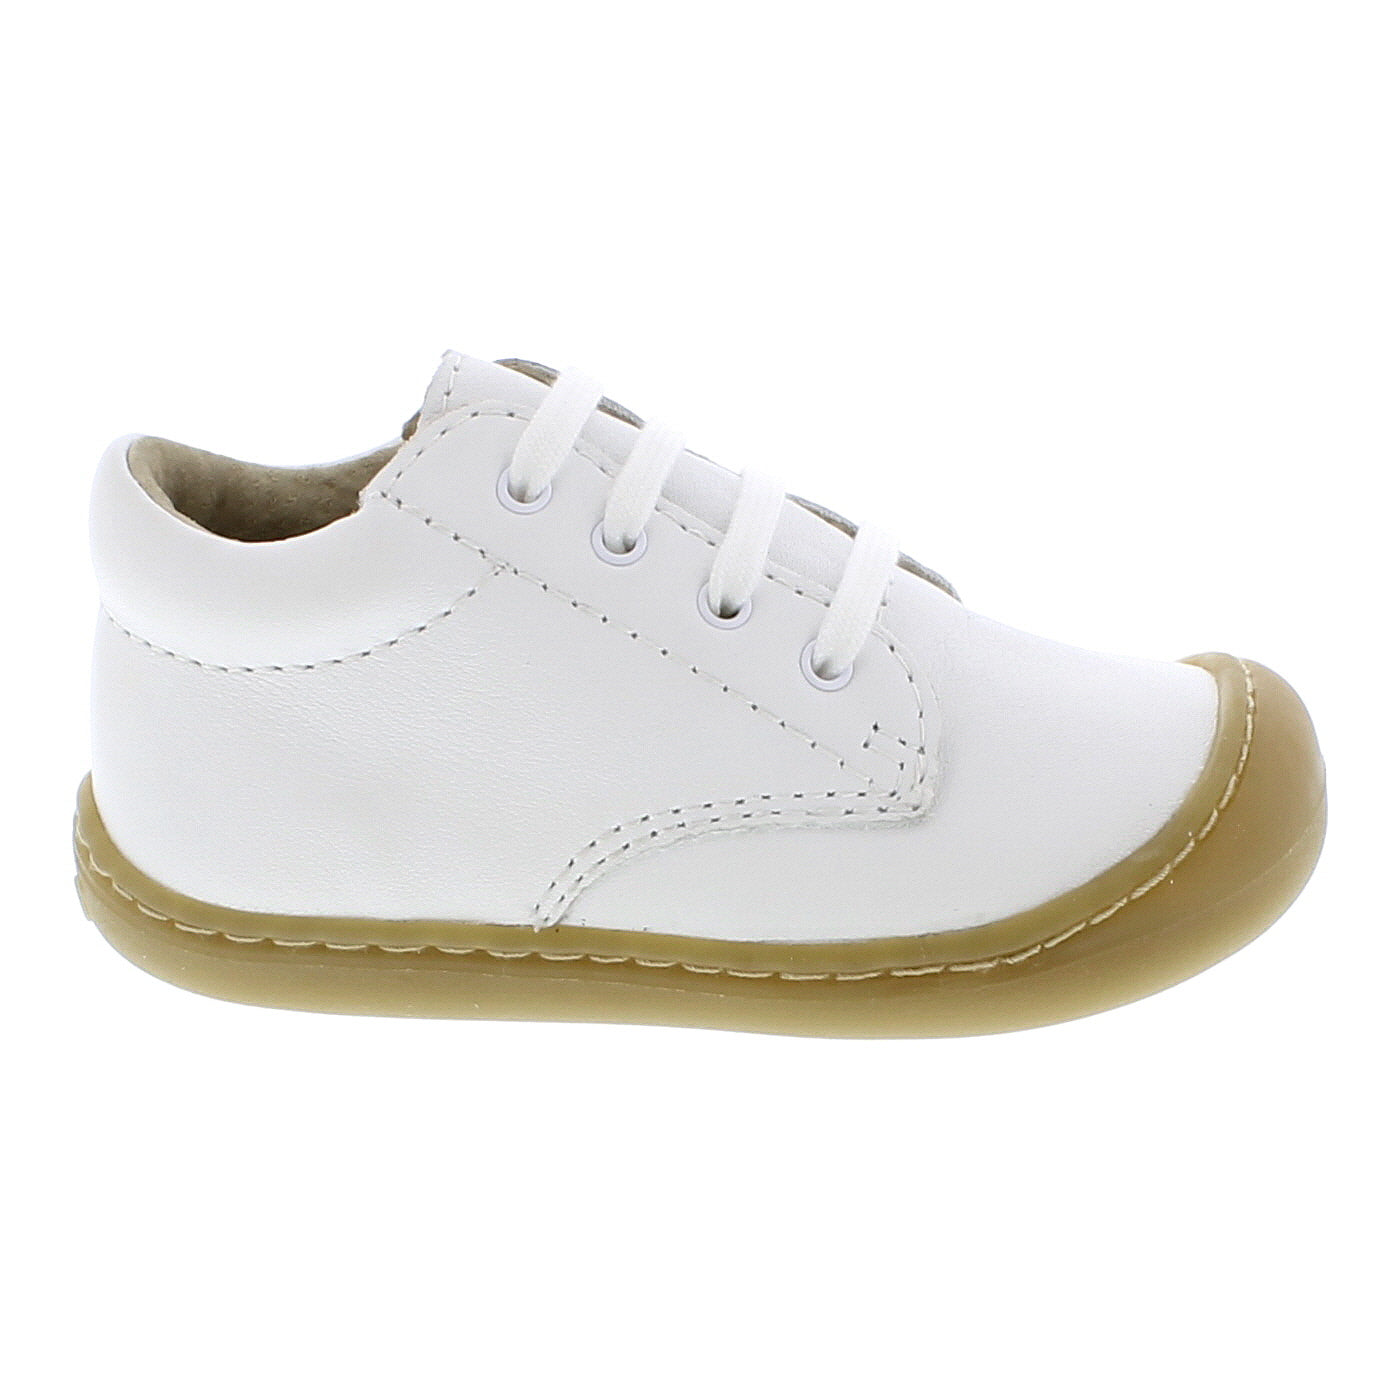 Footmates Reagan Lace Bootie - White Leather